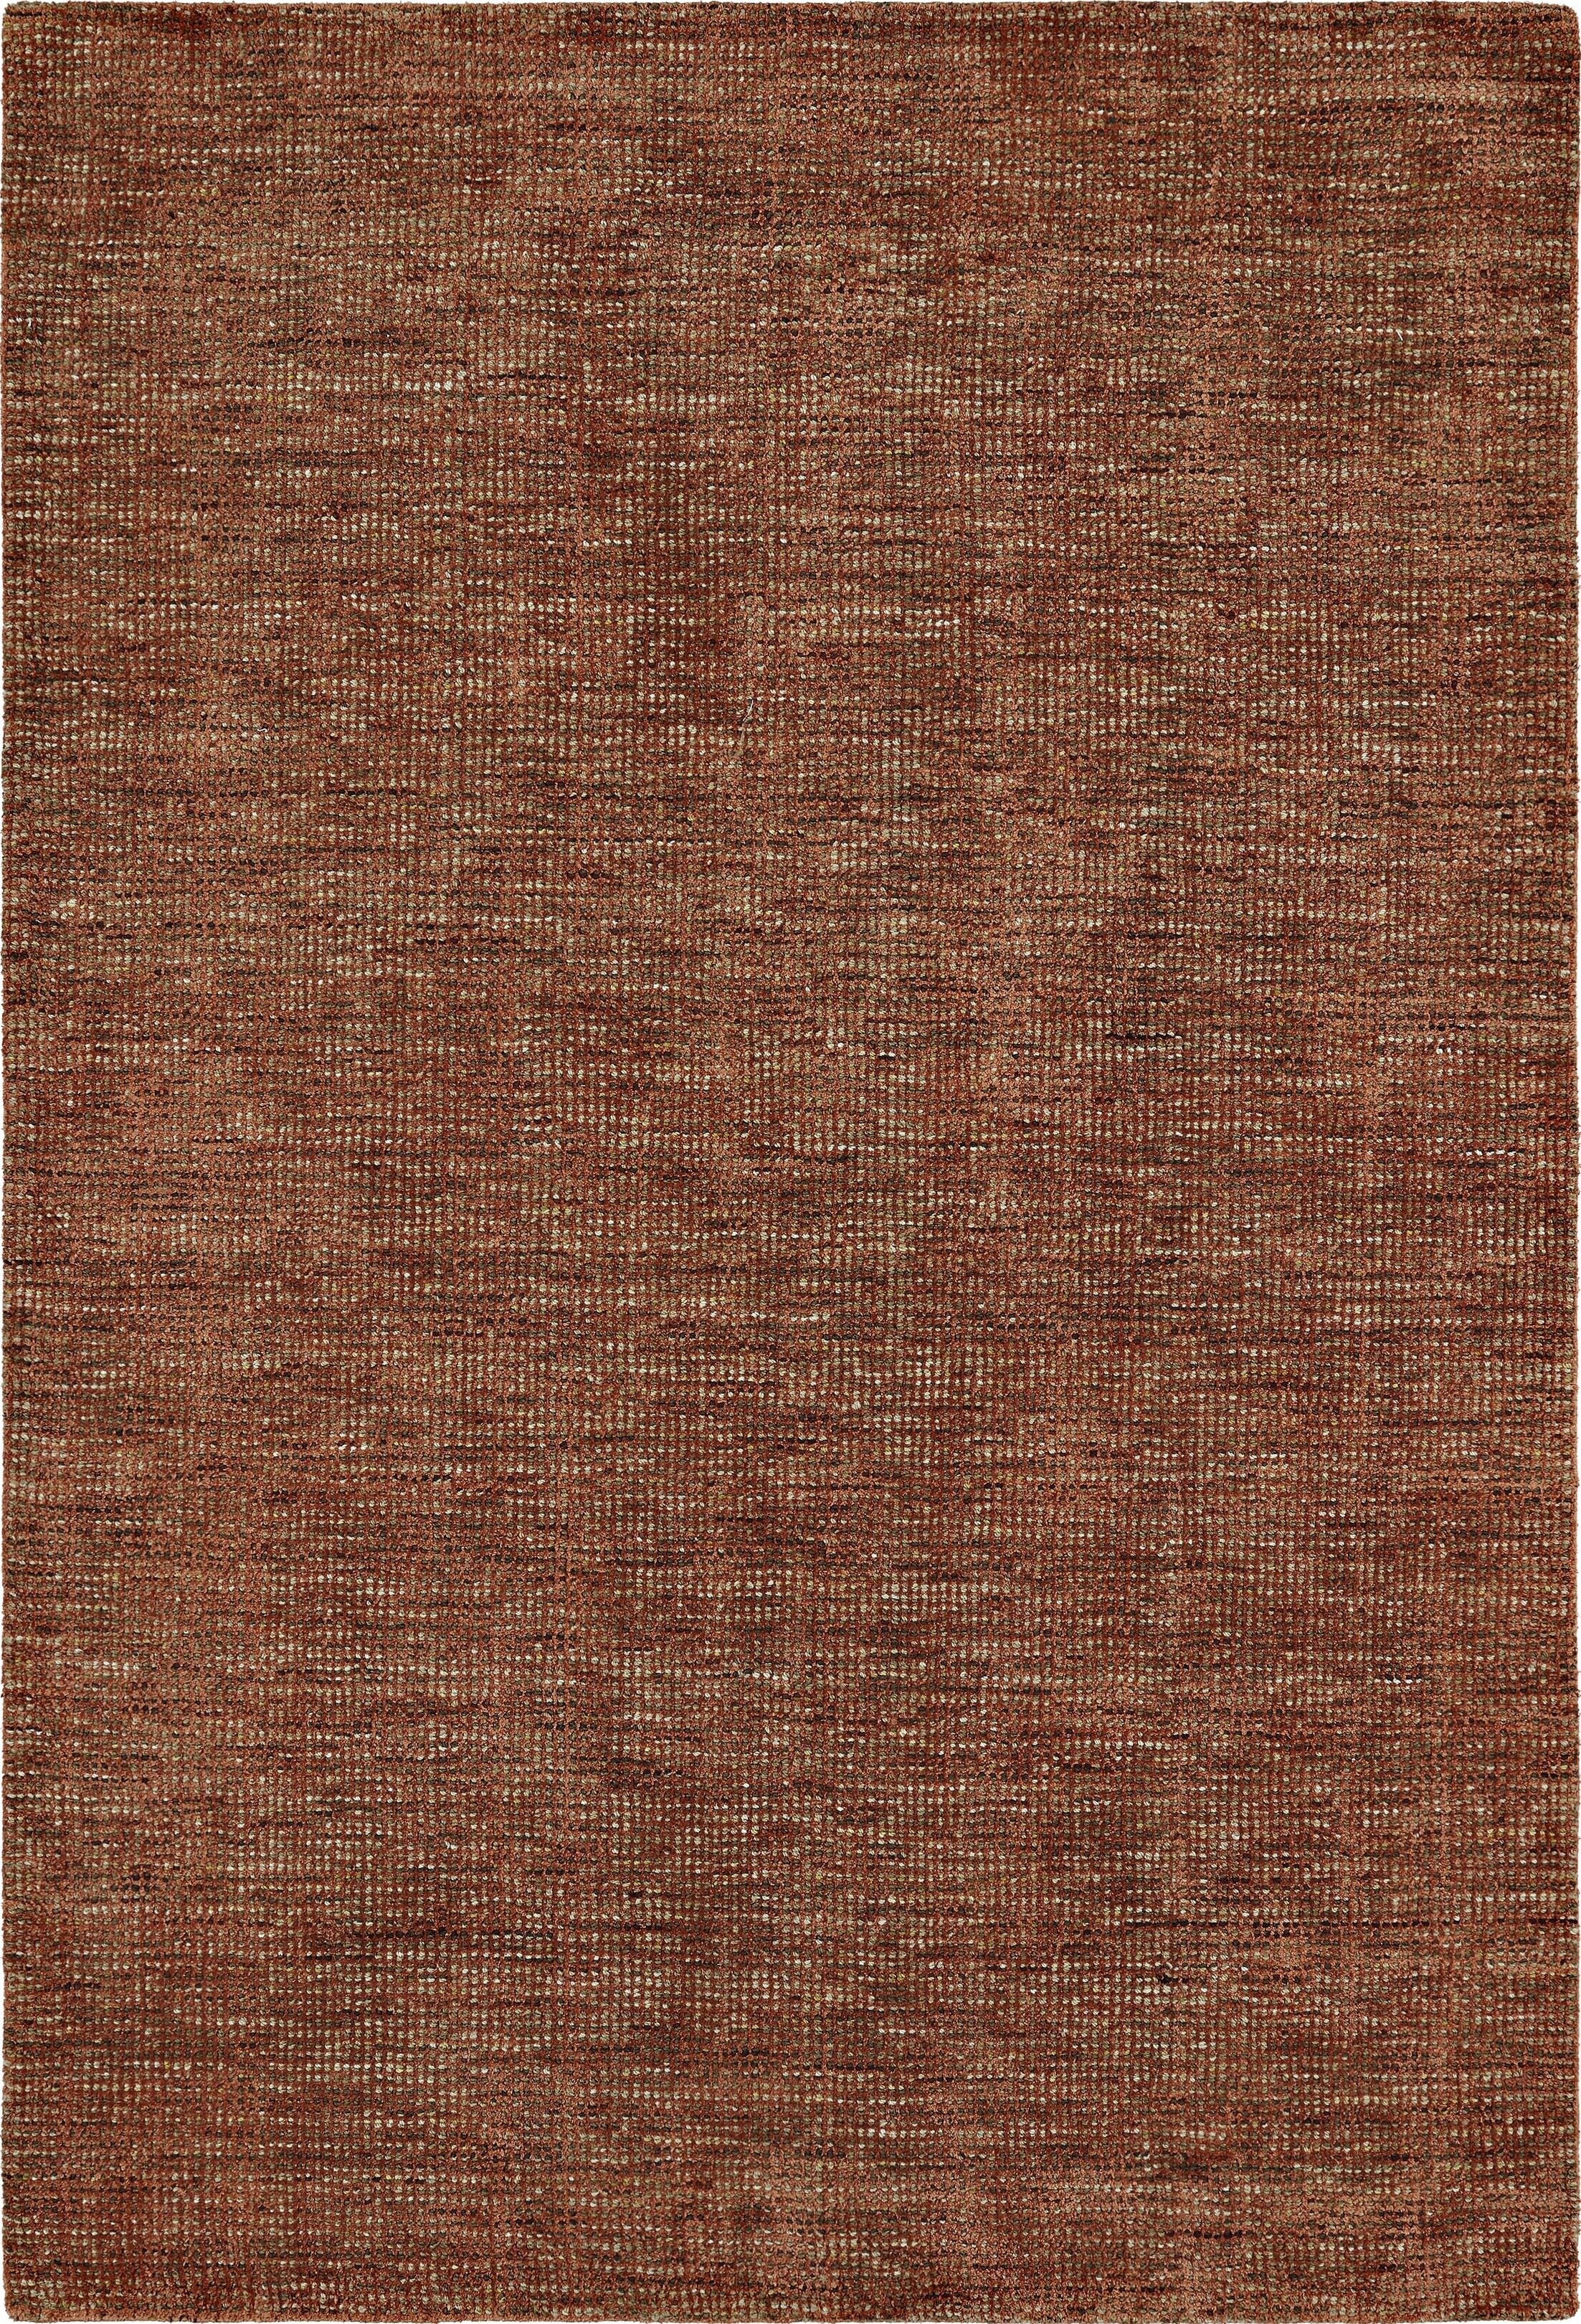 Toro Hand-Loomed Paprika Area Rug Rug Size: Rectangle 5' x 7'6